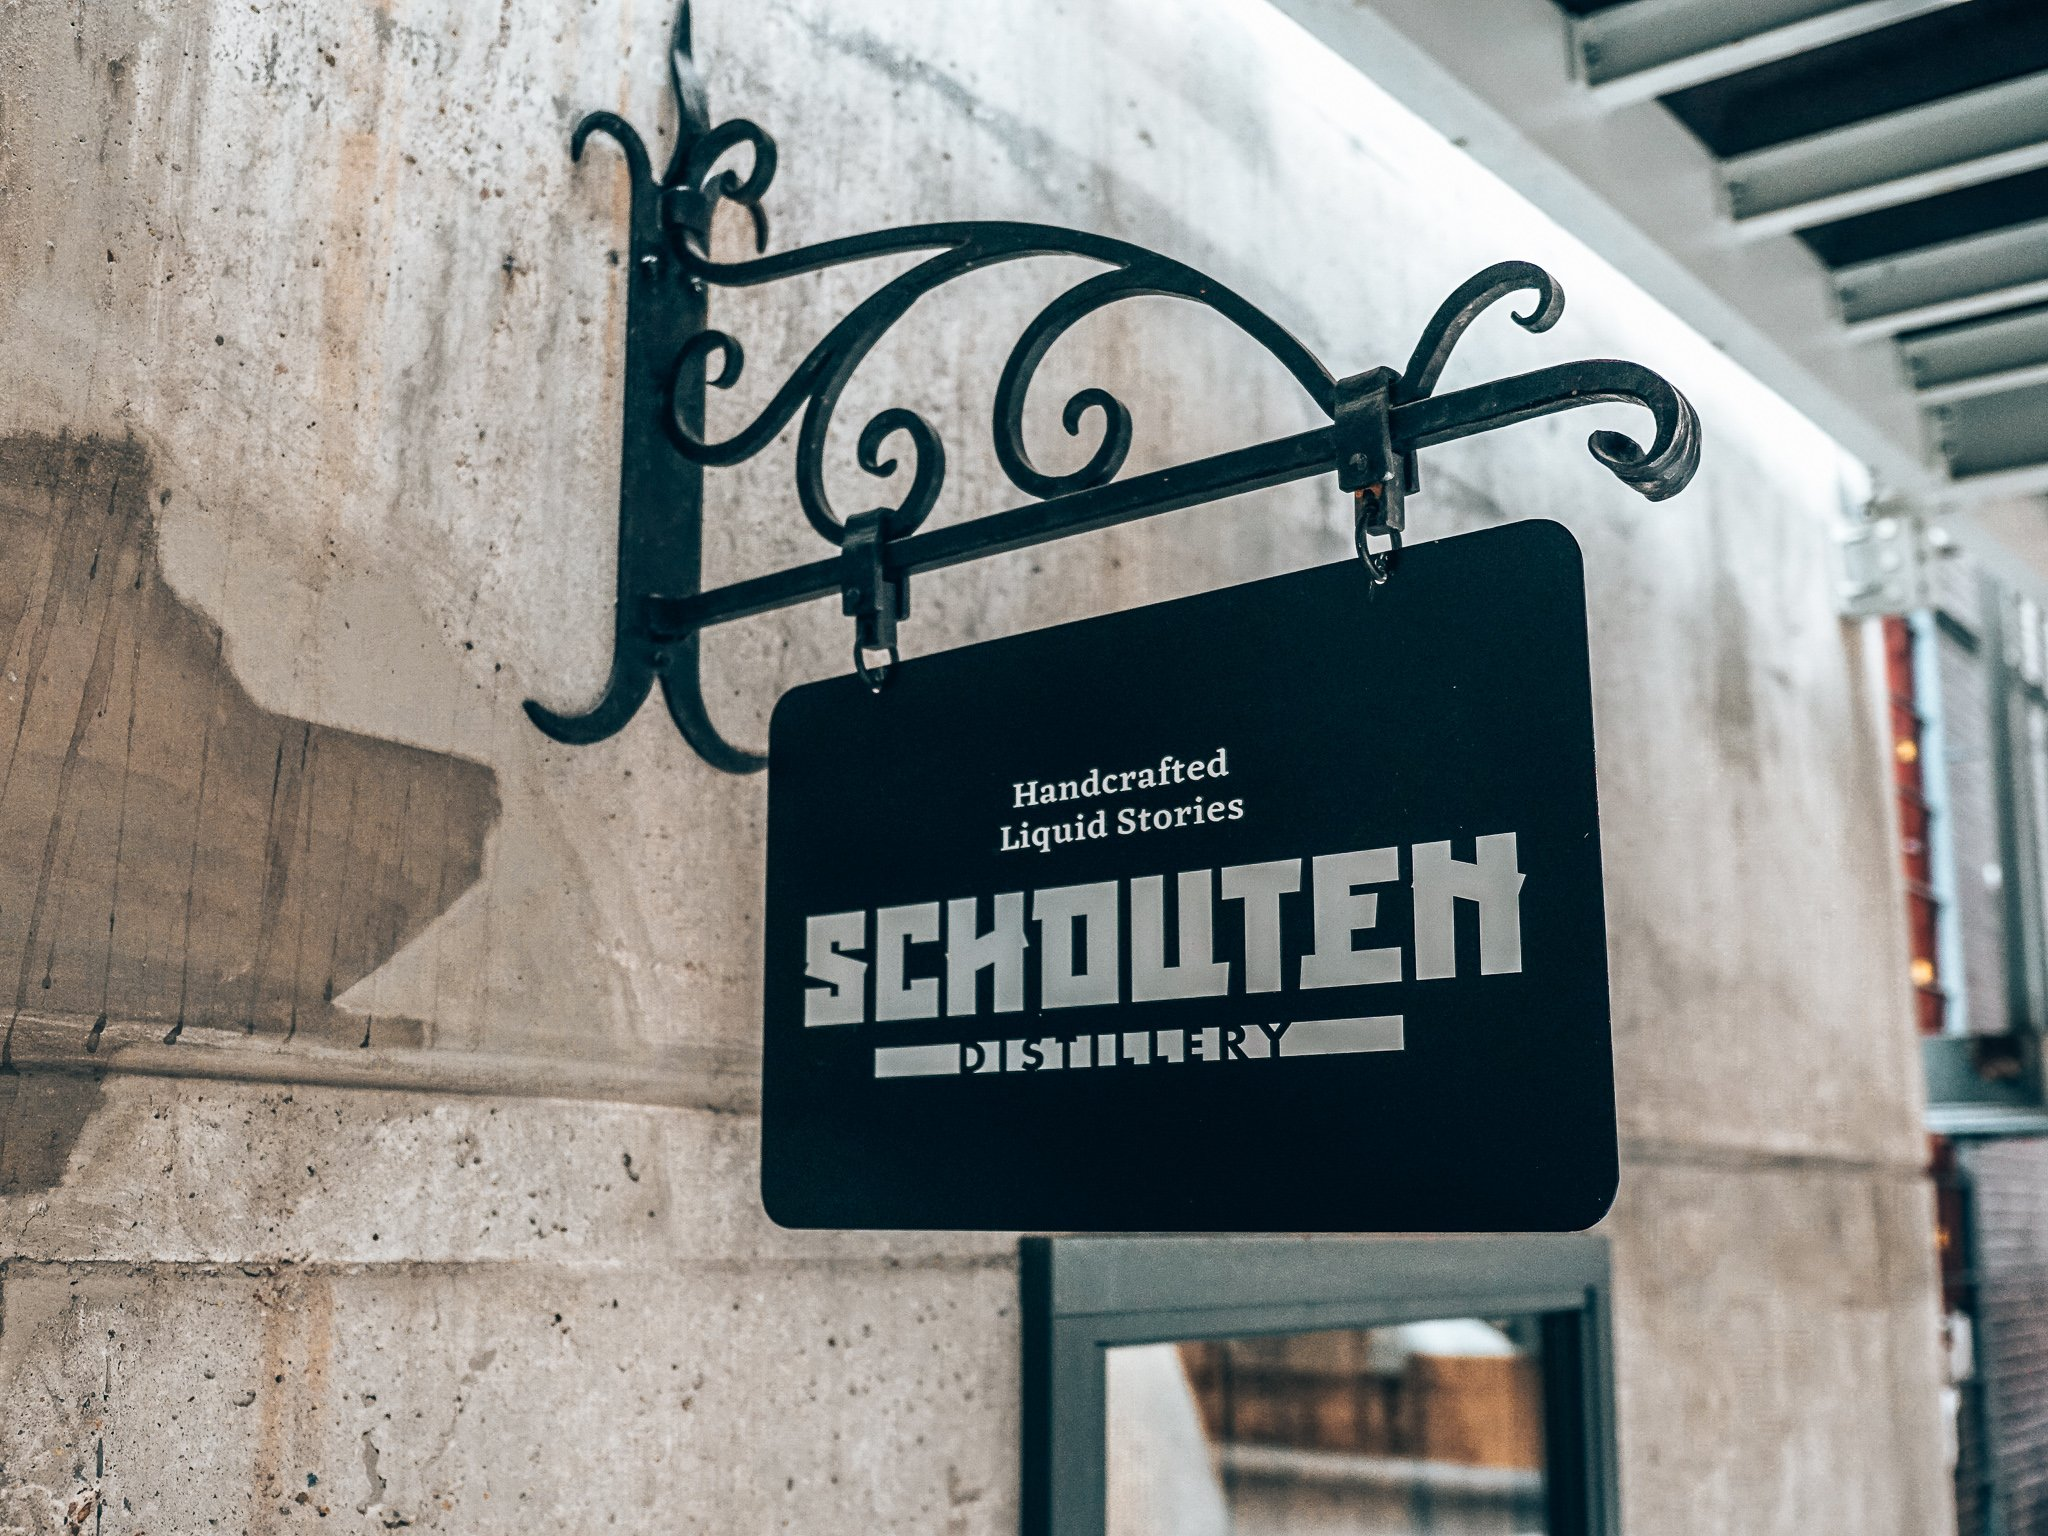 Schouten Distillery, Alles over gin.